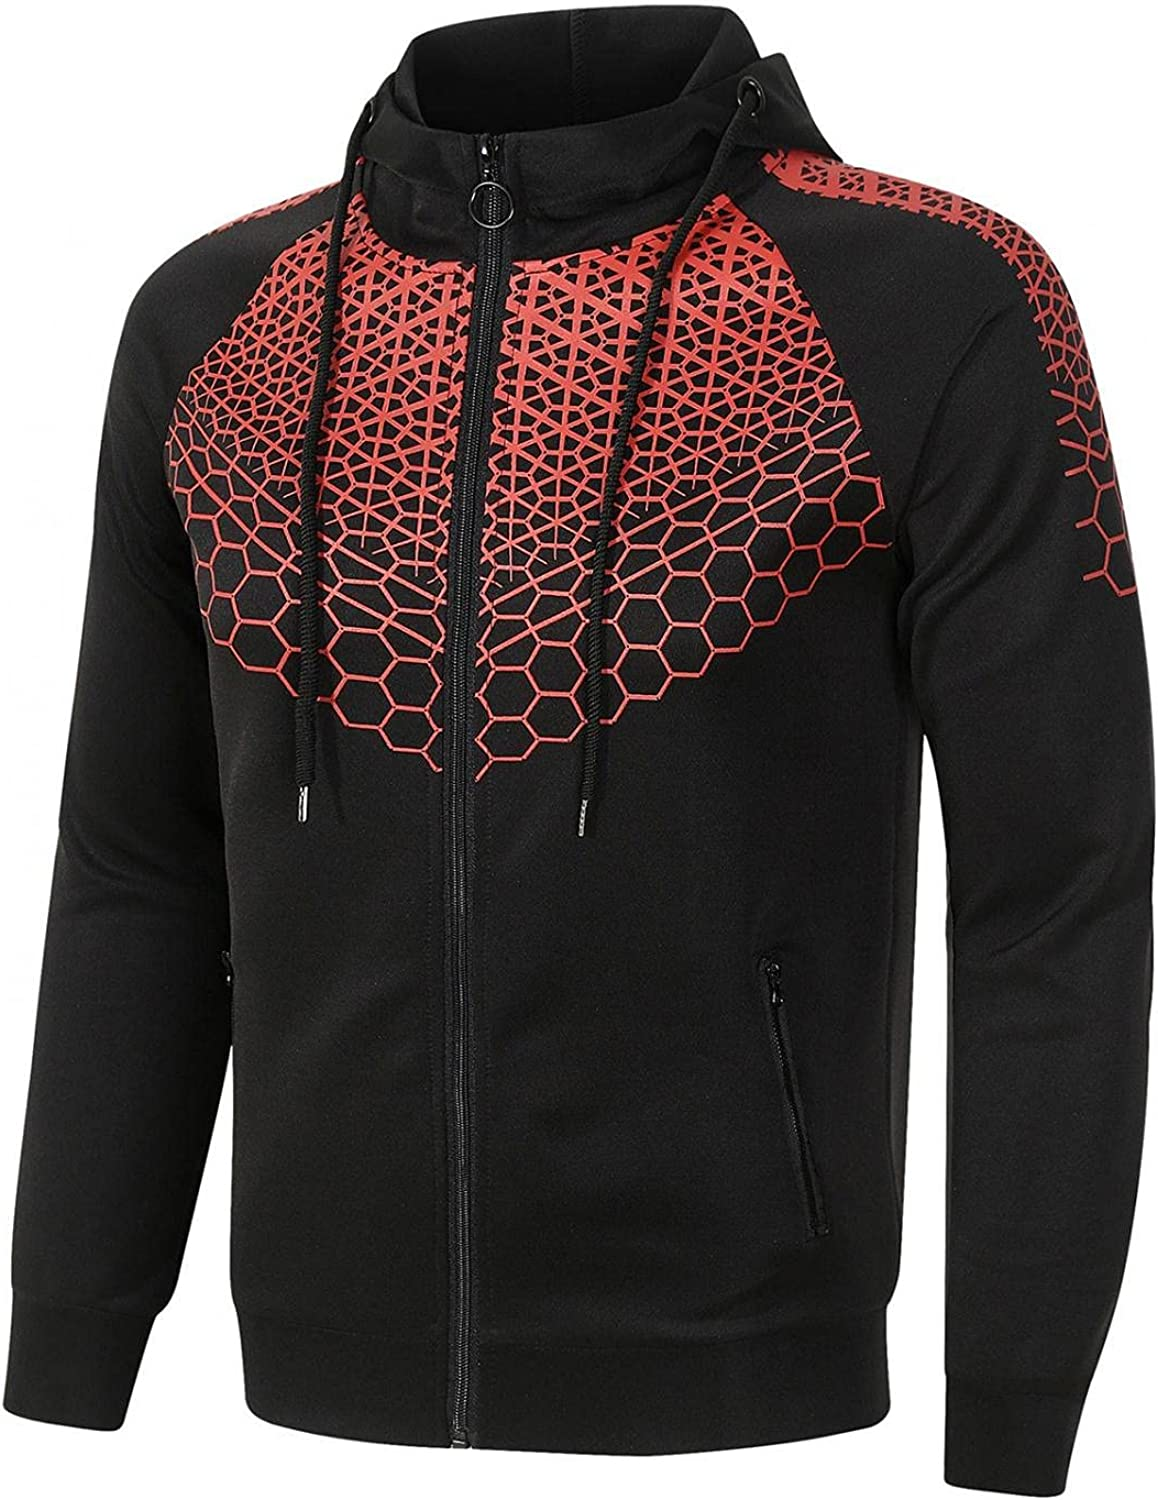 LEIYAN Mens Outdoors Sport Jackets Zip Up Casual Long Sleeve Slim Fit Activewear Novelty Graphic Stand Collar Moto Jackets